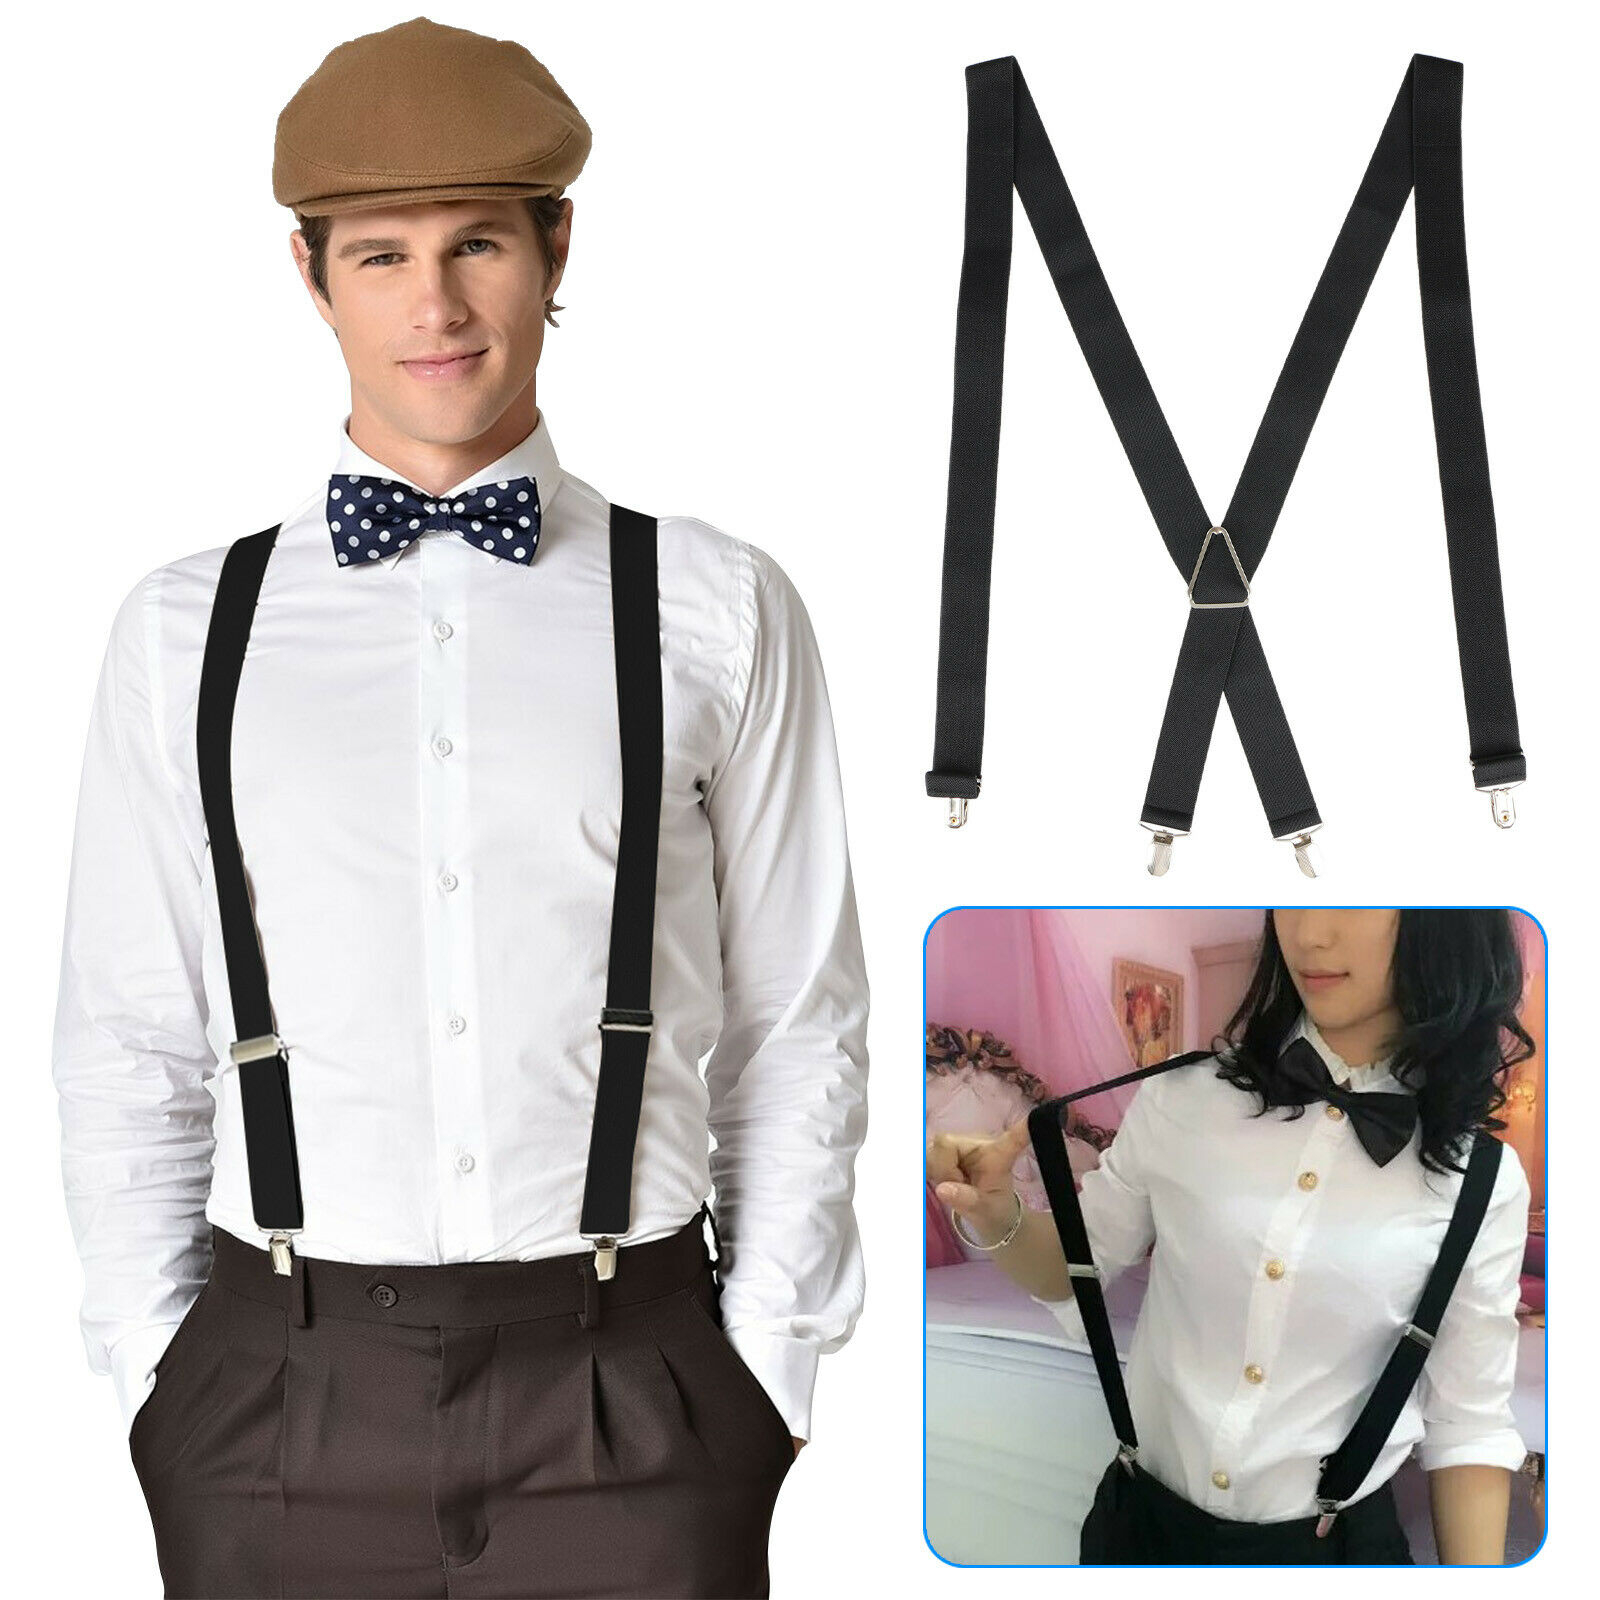 Button End and Strap Elastic Adjustable Solid Clip Suspenders MF-15 ELEOPTION Men/'s Classic Y-Back Suspender with Convertible Clip